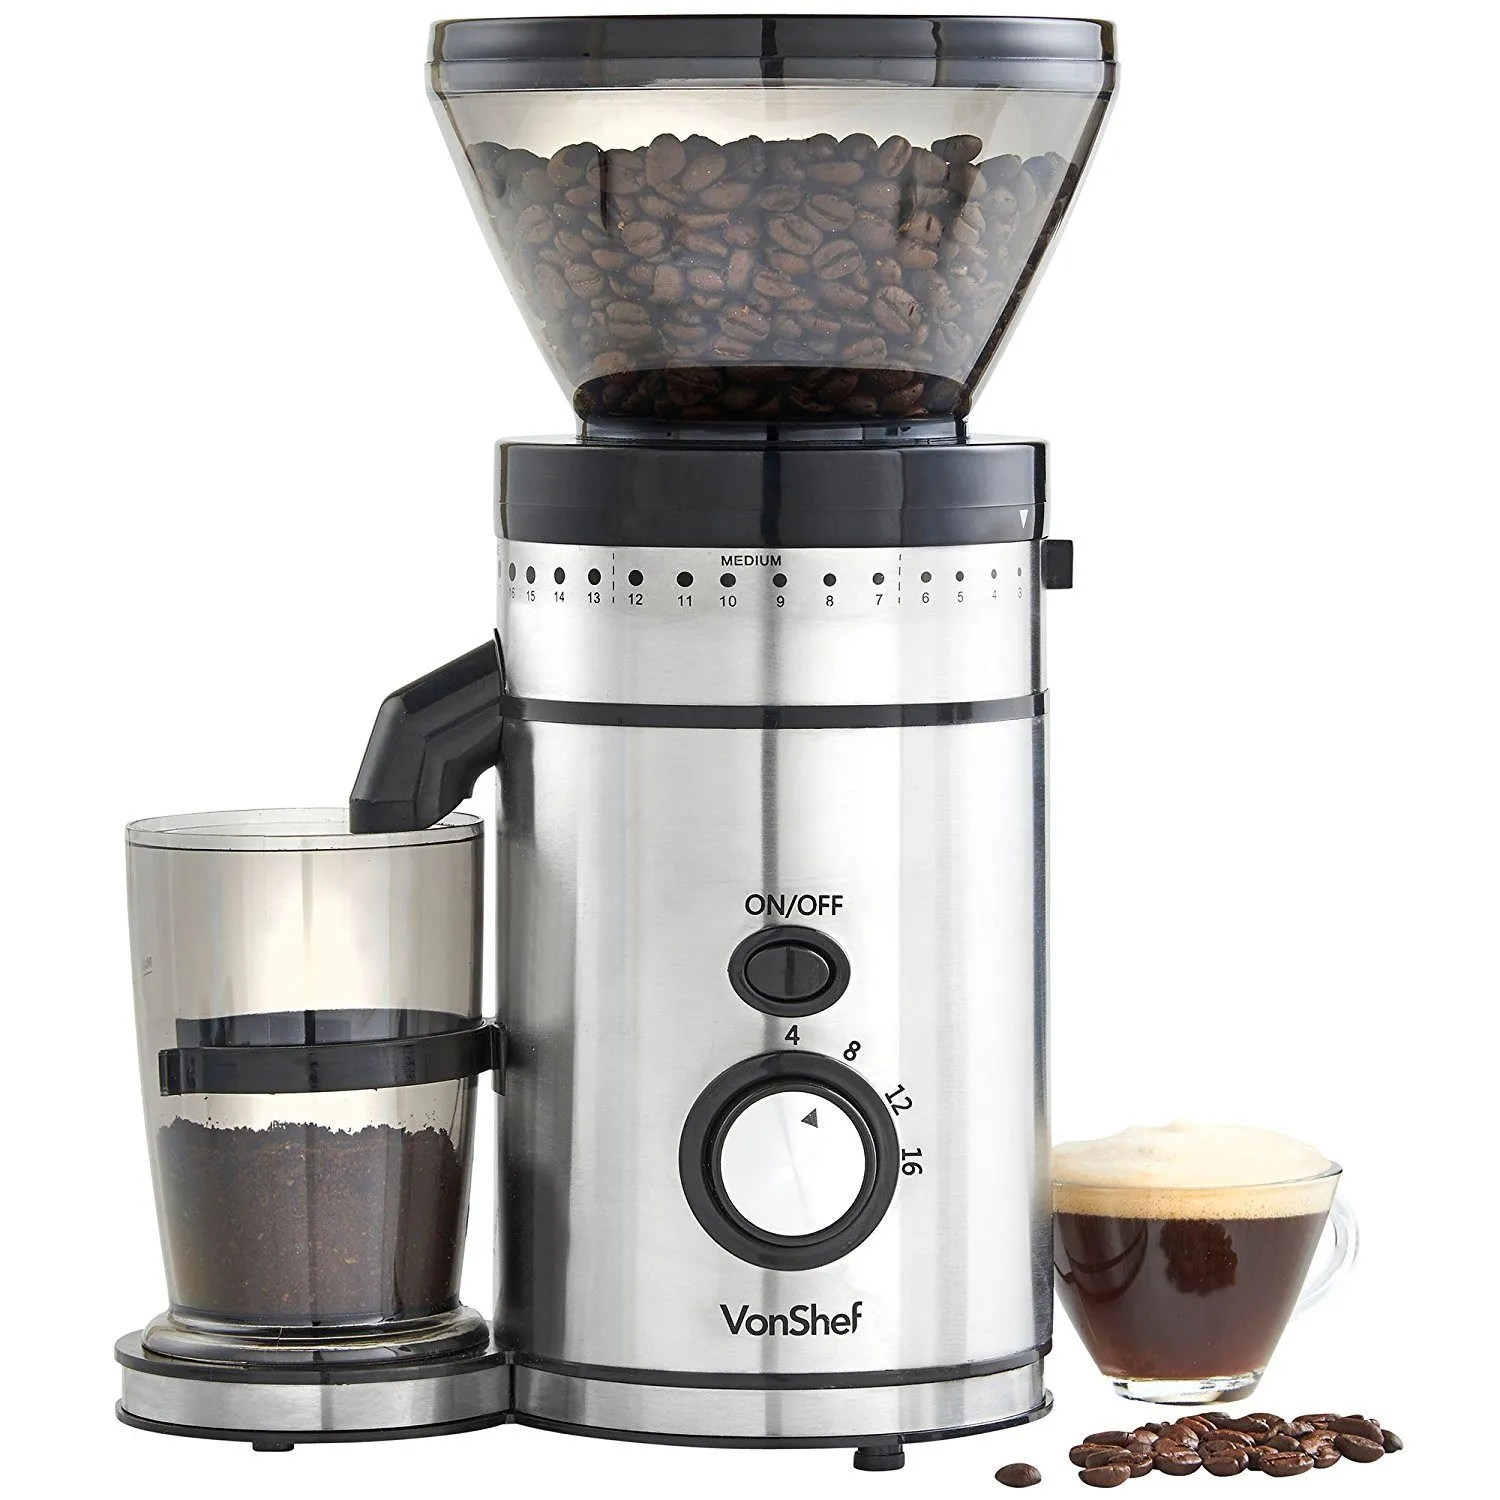 VonShef Premium Burr Coffee Grinder with 18 settings